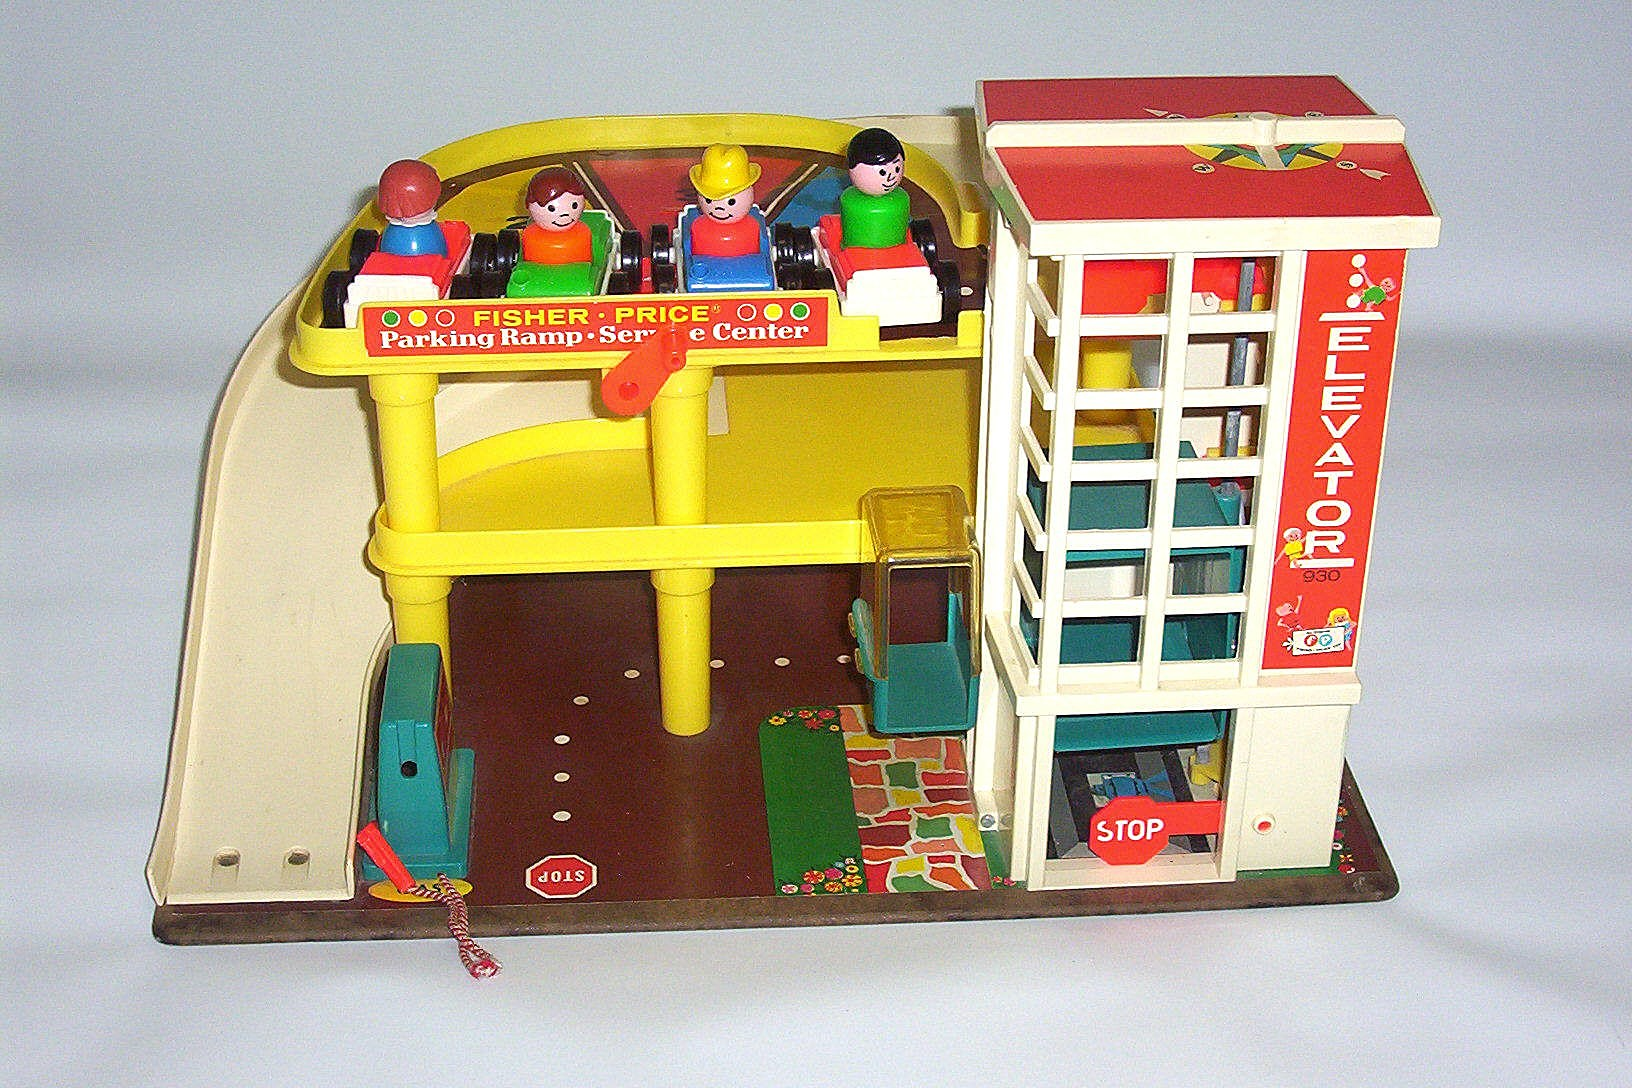 Garage Fisher Price : Fisher price parking garage to learn more about this vintau flickr